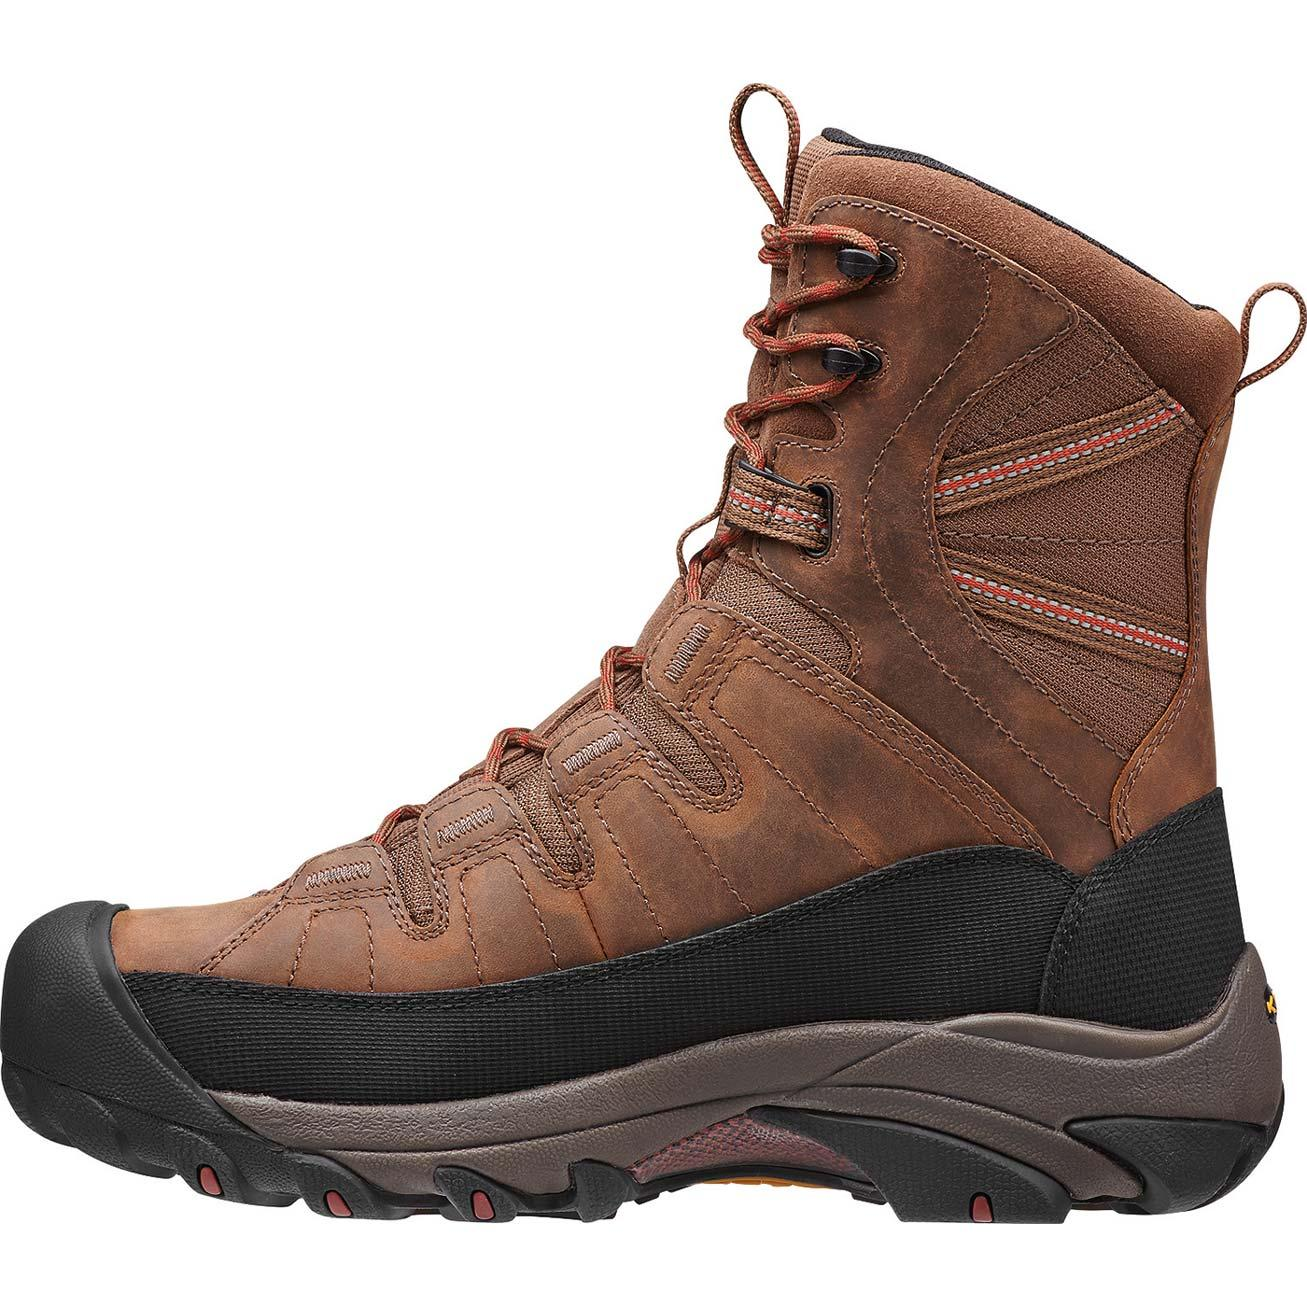 cdc2c0a7742e Images. KEEN Utility® Minot Steel Toe Waterproof 600g Insulated Work Boot  ...